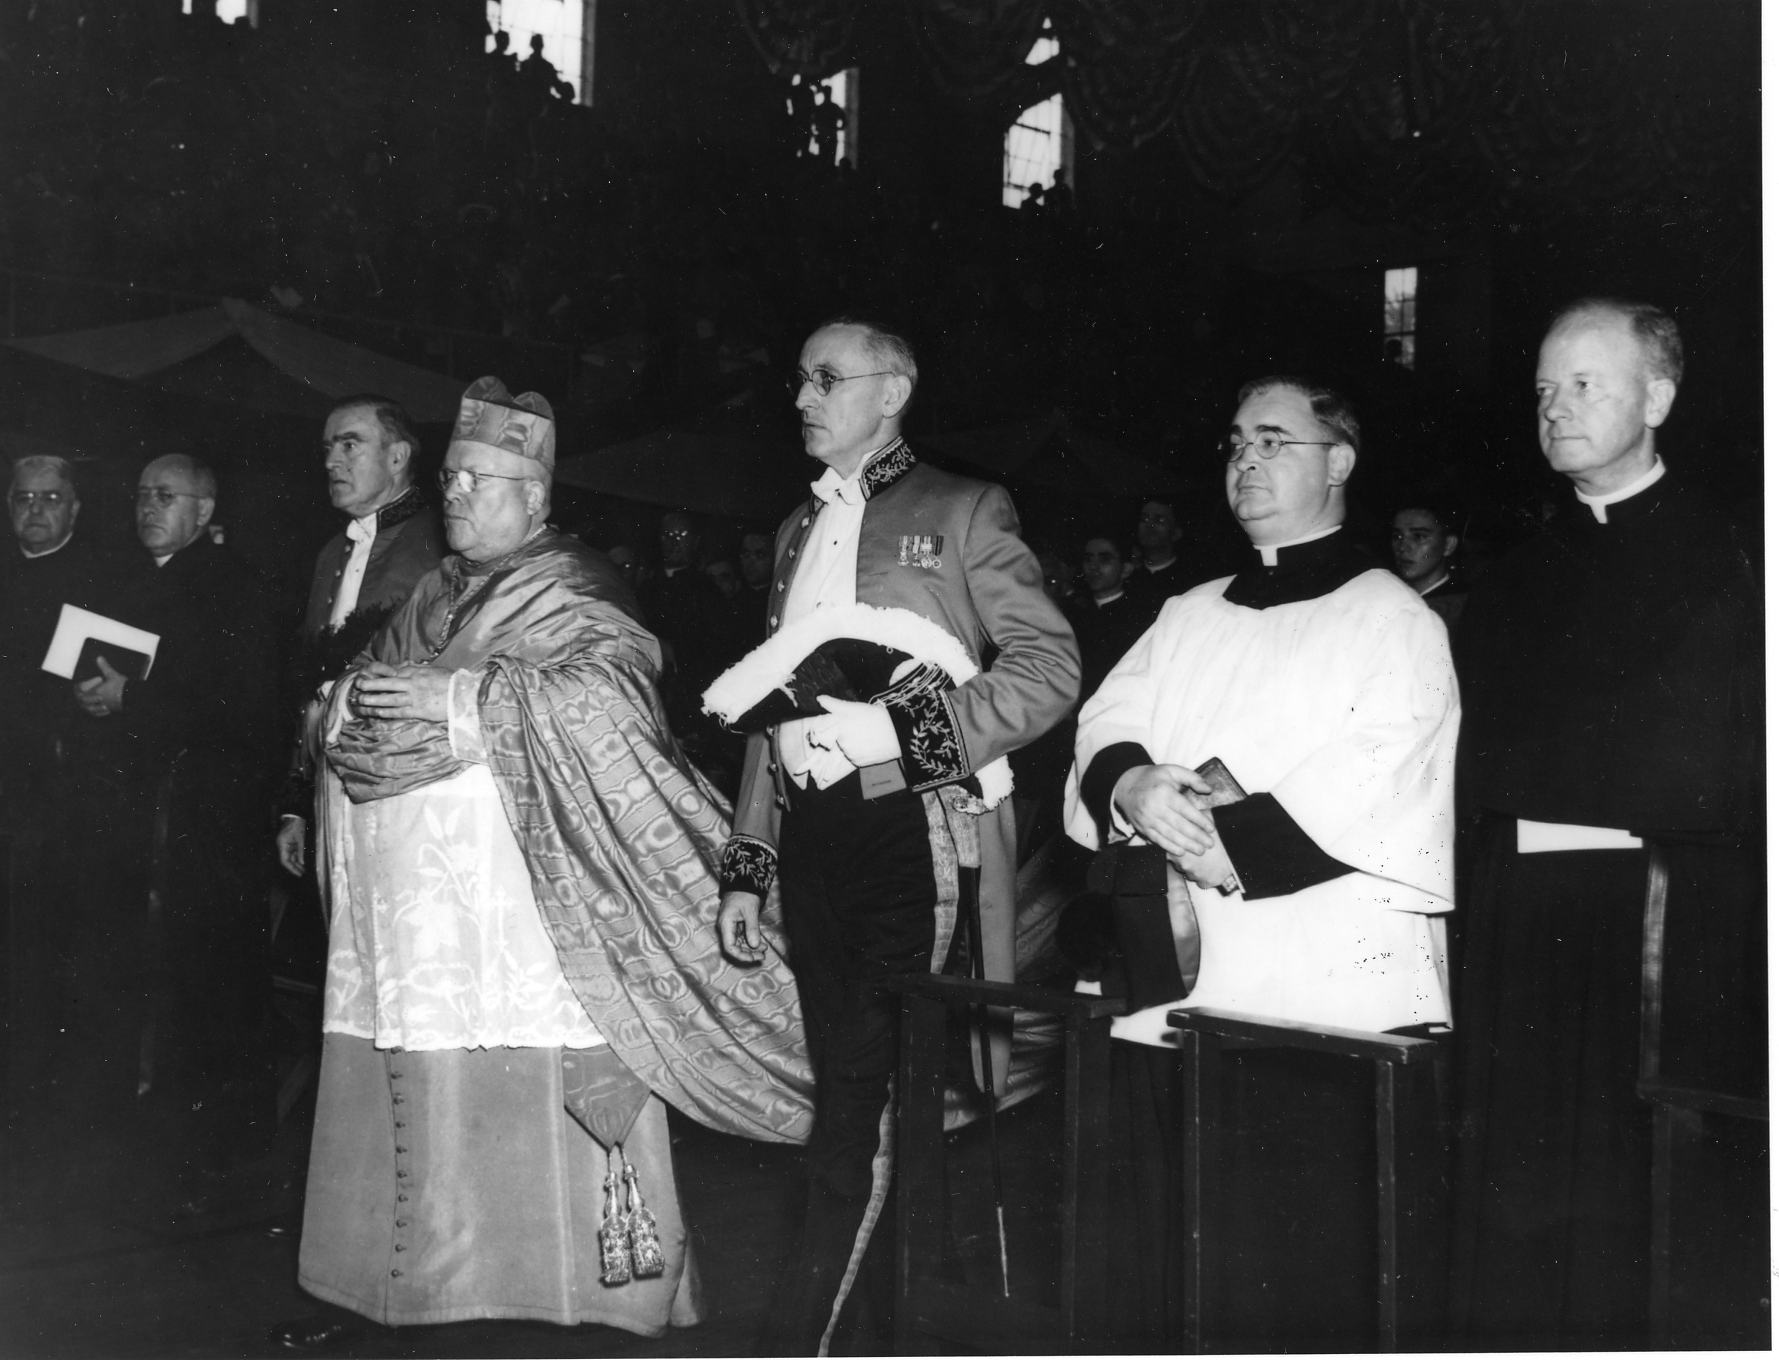 Dennis Cardinal Dougherty, D.D., Archbishop of Philadelphia. Procession of Solemn Pontifical Mass, 20 September 1942.